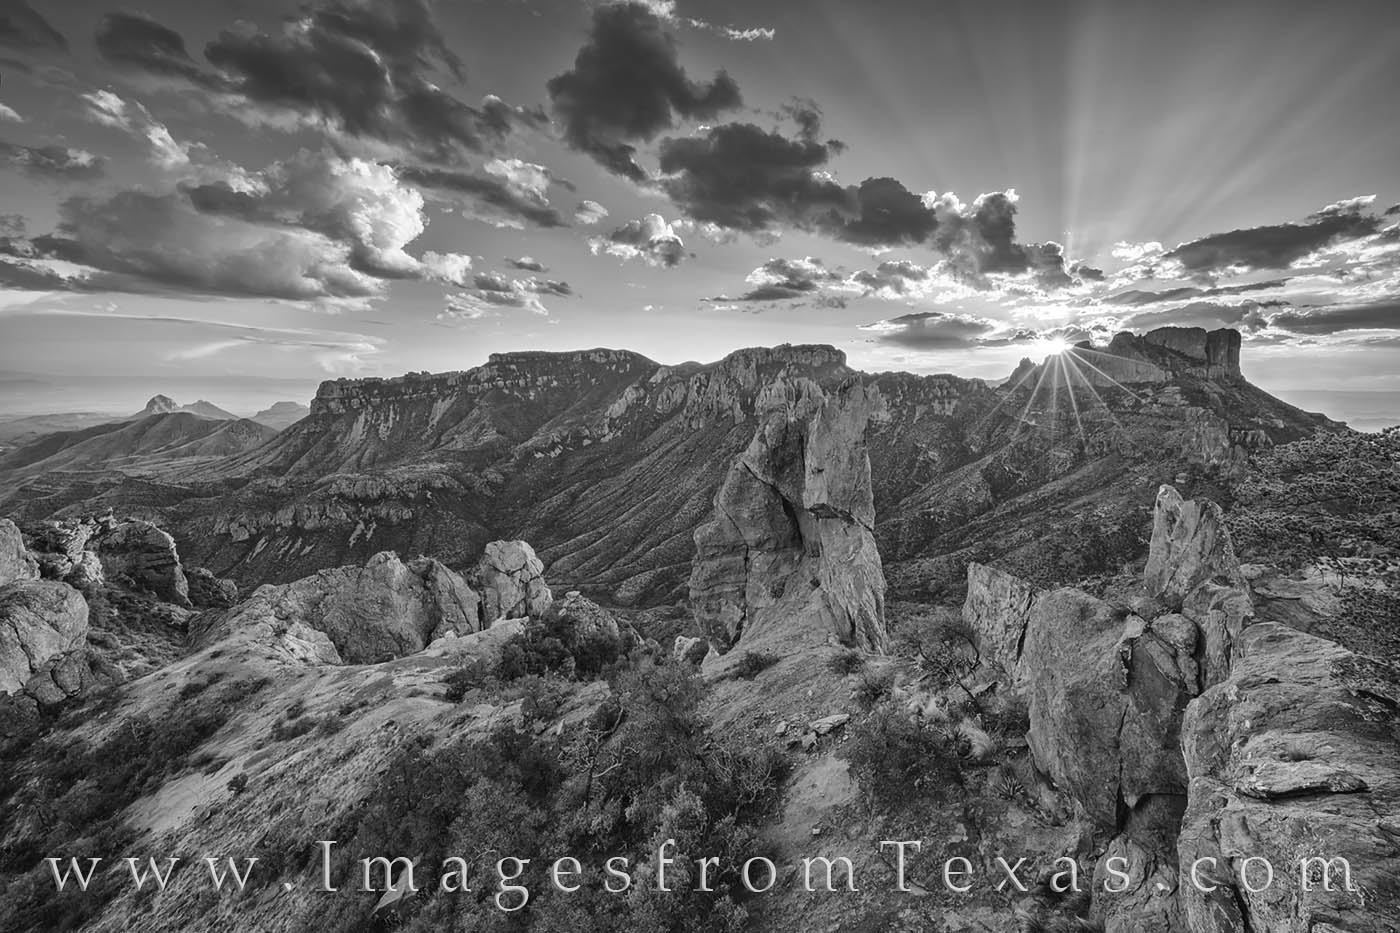 big bend, big bend national park, texas parks, lost mine trail, texas landscapes, chisos mountains, lost mine images, big bend photos, photo